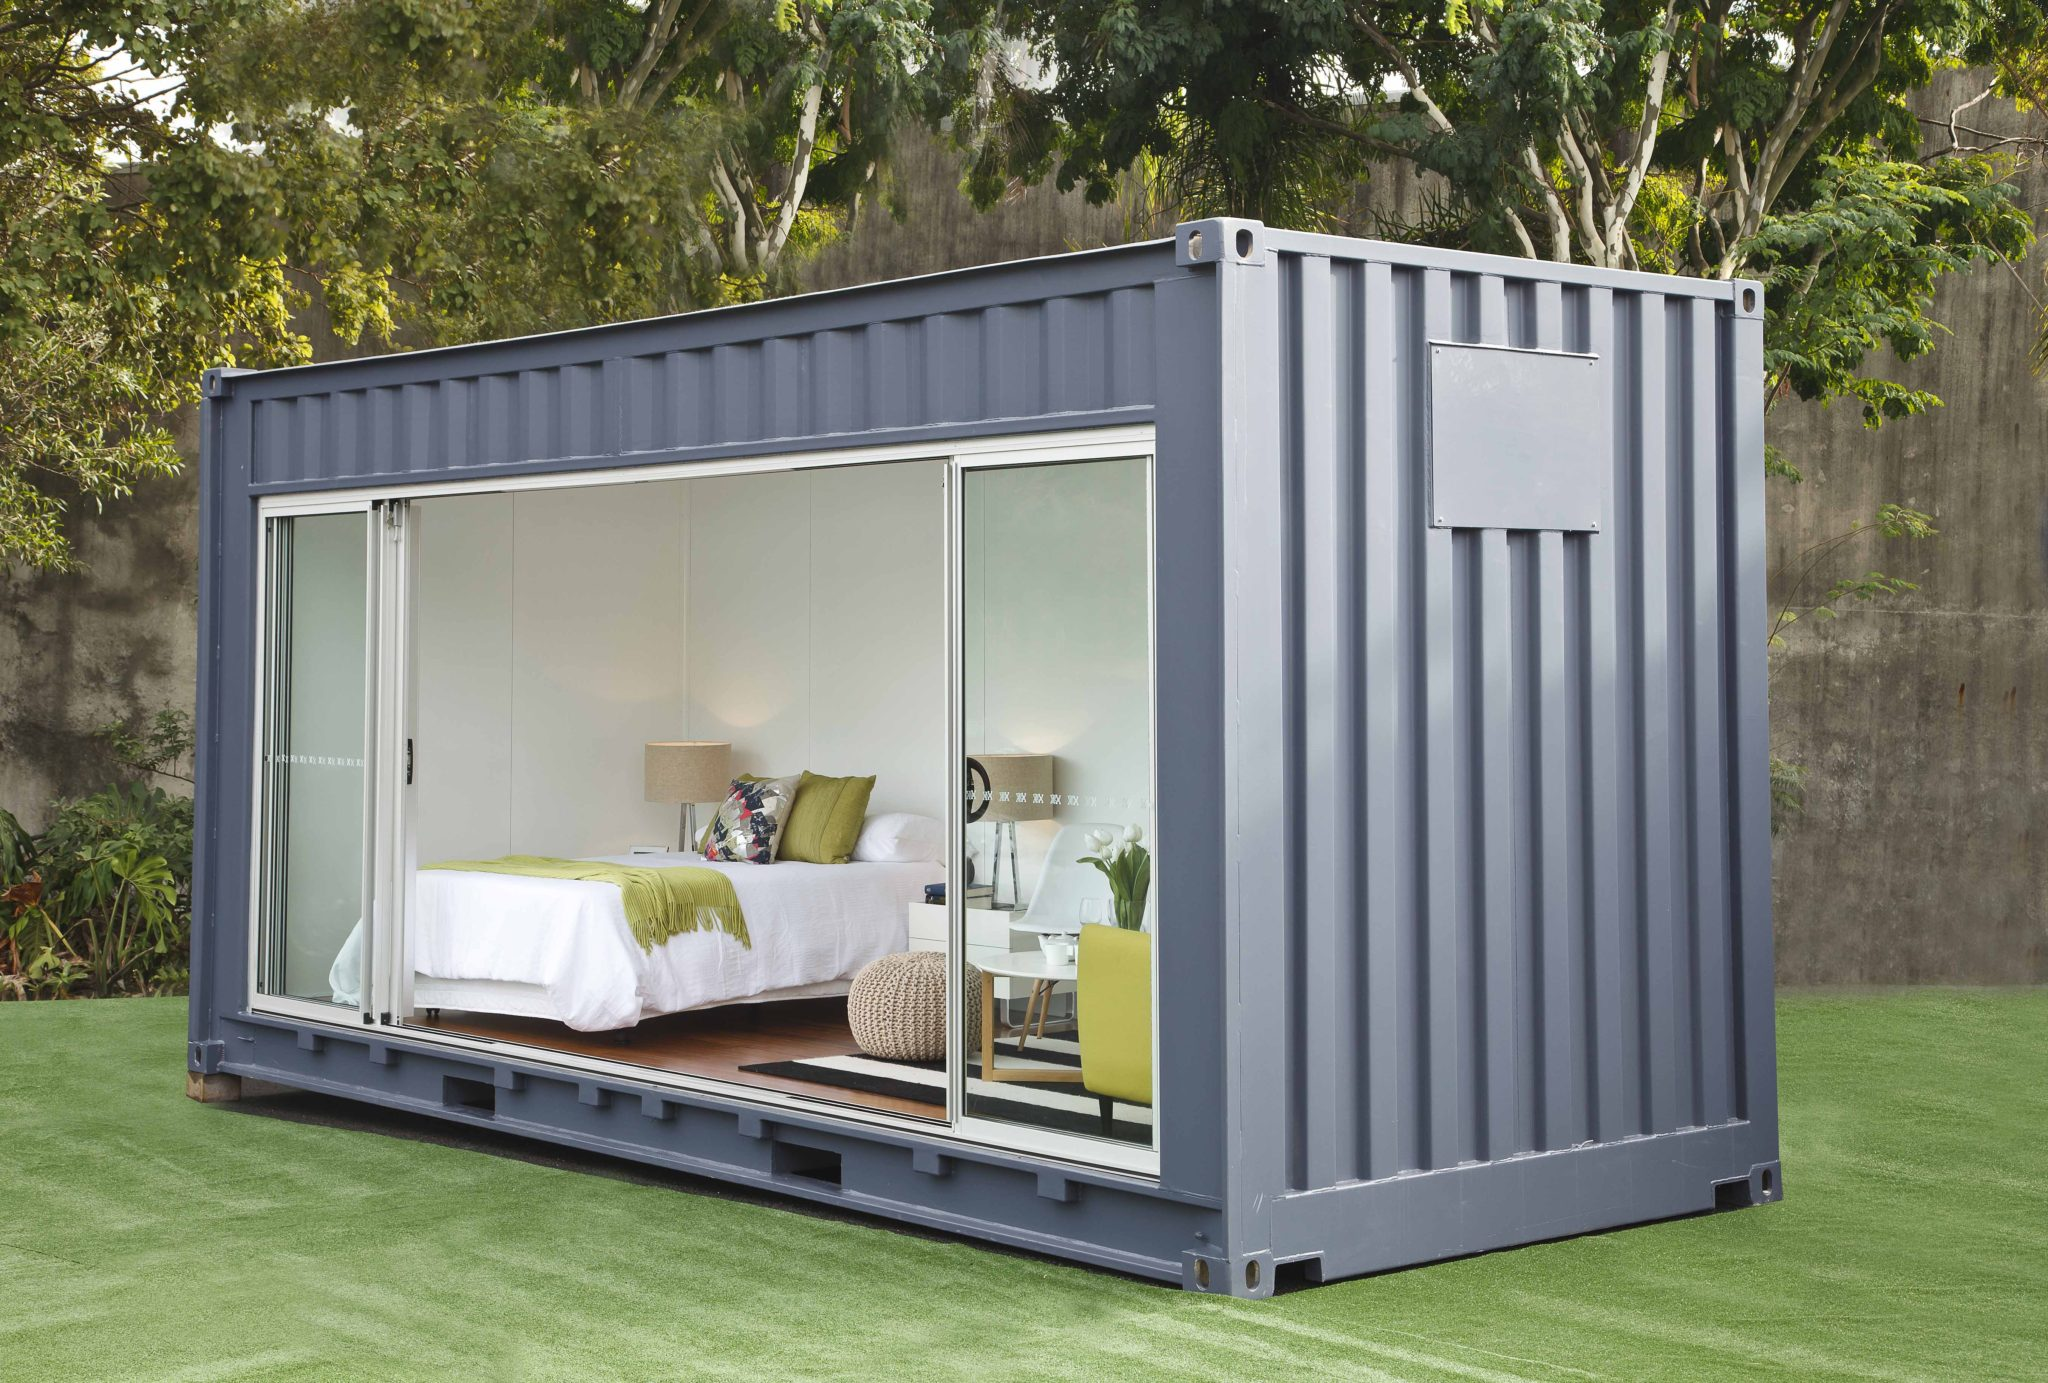 MG 4699Need extra room  Rent a shipping container for your backyard  . Shipping Container Room Ideas. Home Design Ideas